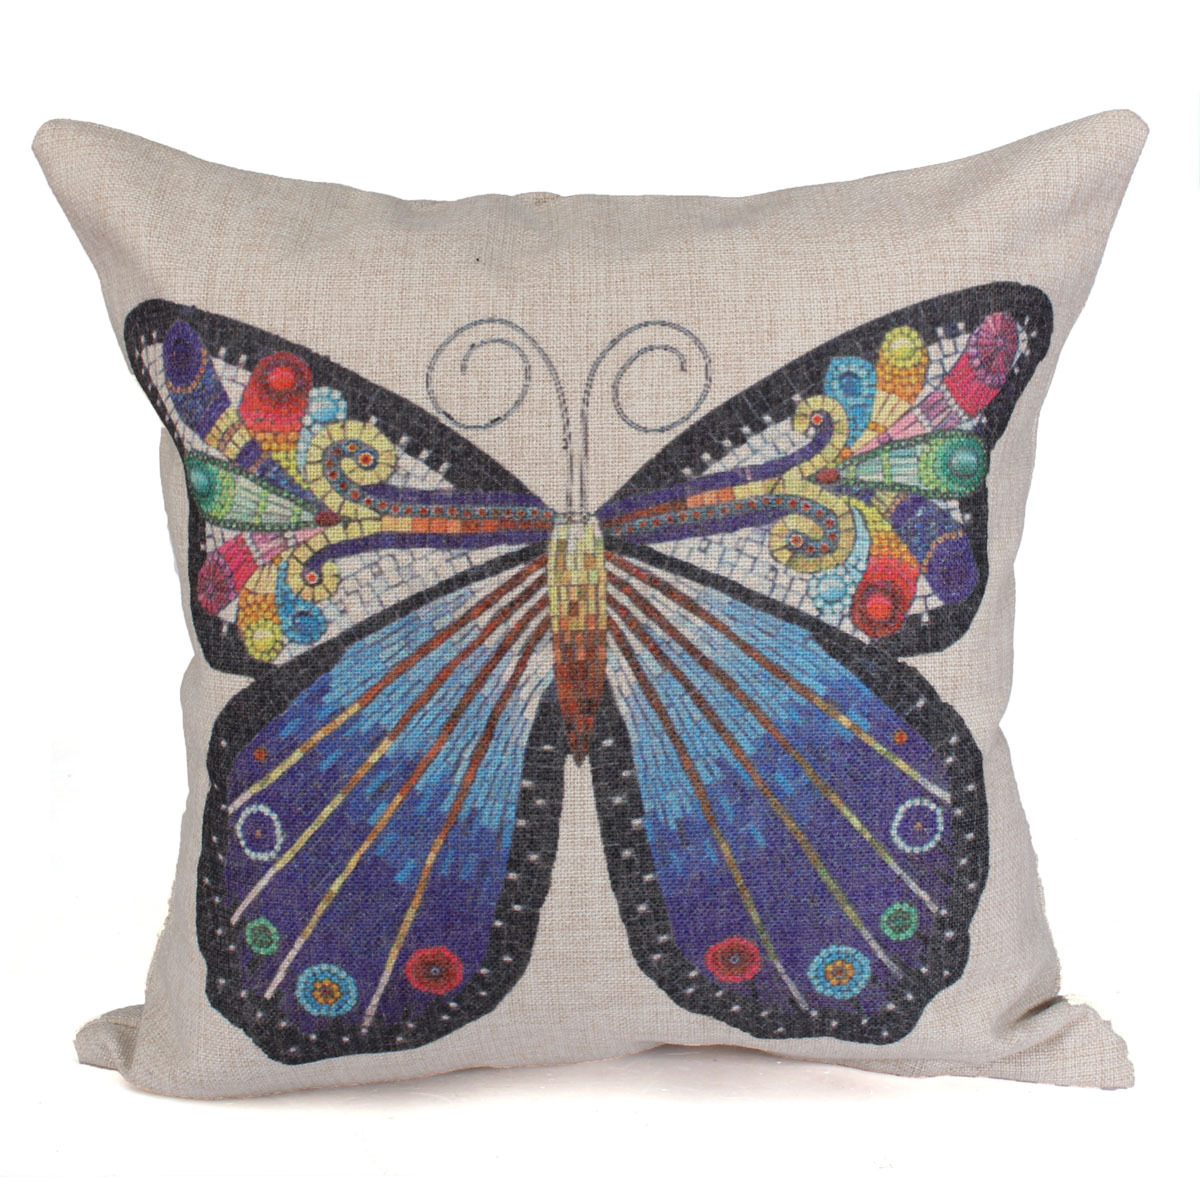 Throw Pillows With Butterfly : Butterfly Flower Classic Cotton Linen Cushion Cover Throw Pillow Case Home Decor eBay